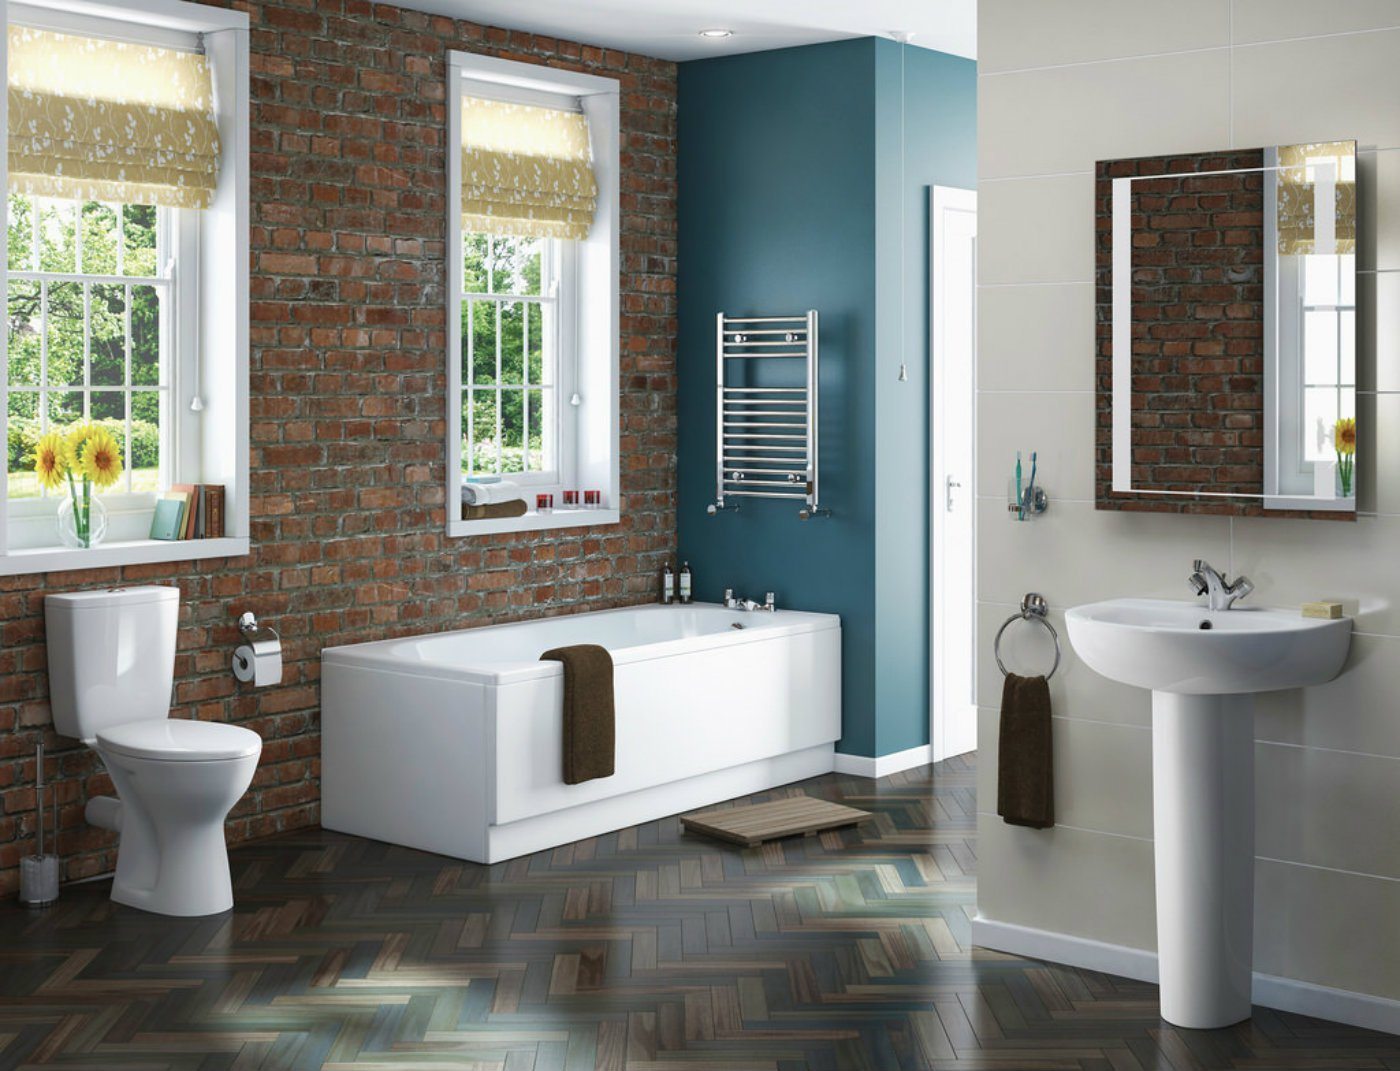 How Much Does It Cost to Fit a Bathroom?